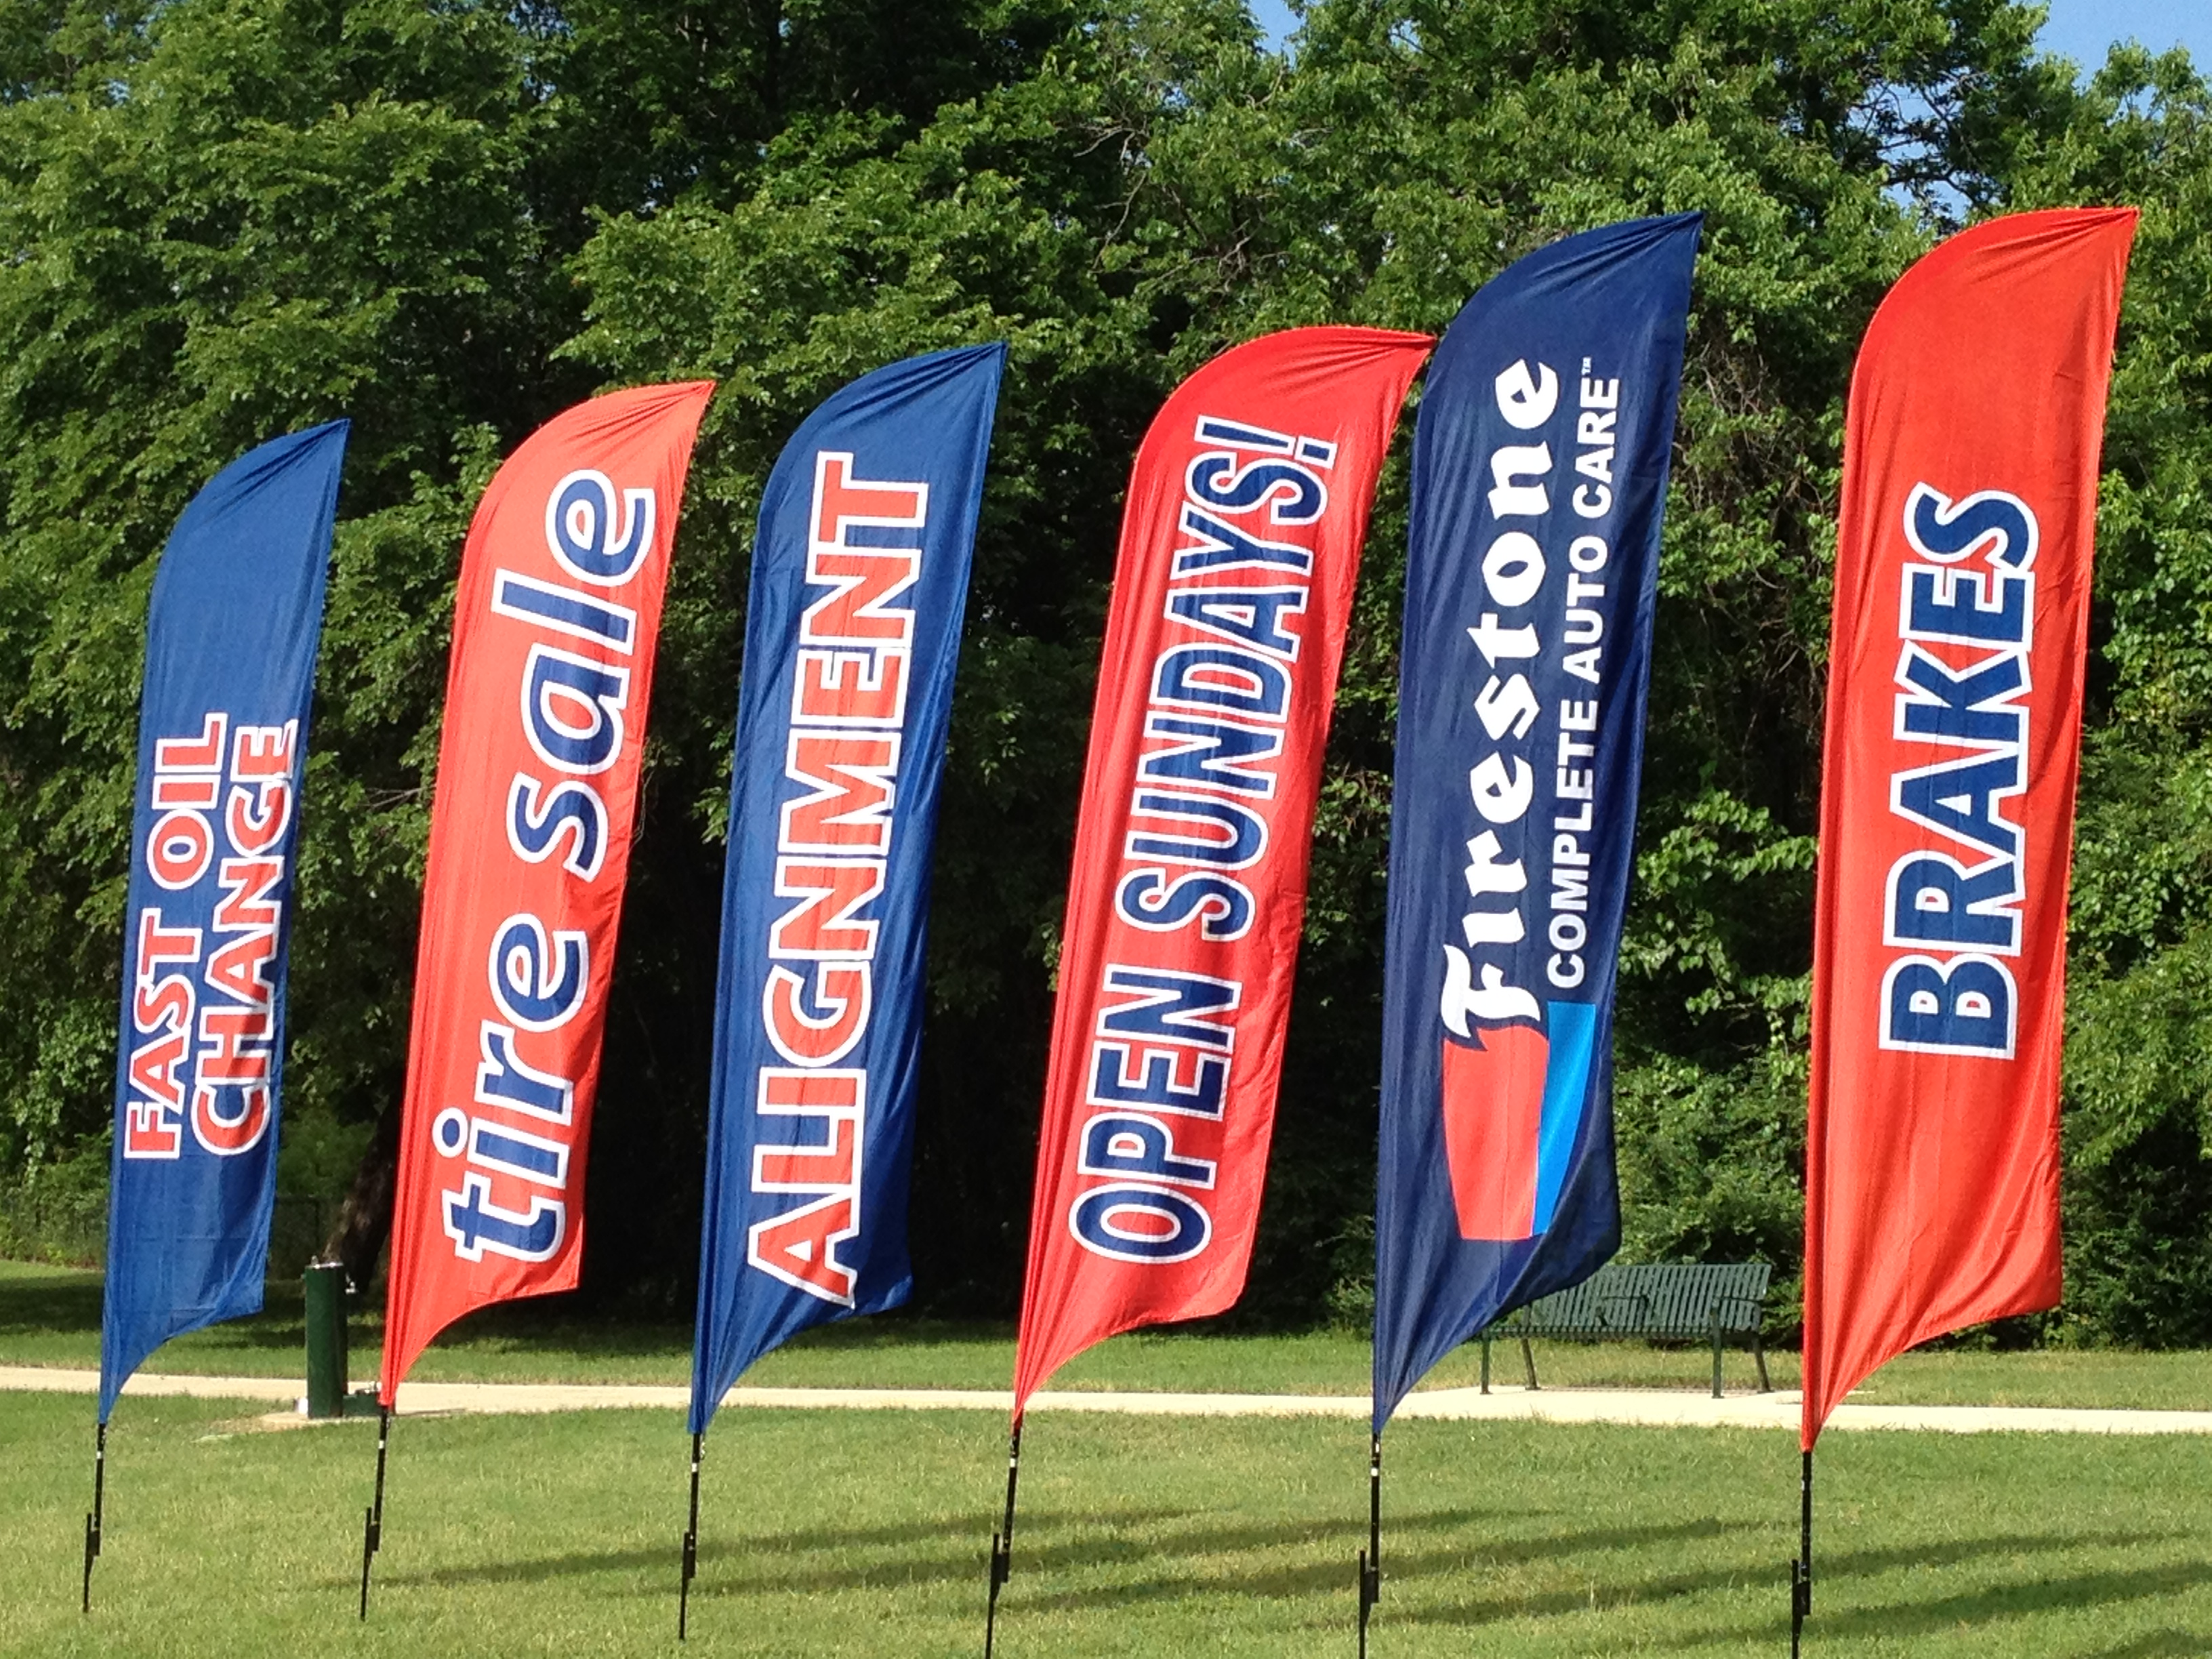 cost effective adversails air ad promotions advertising flags feather flags